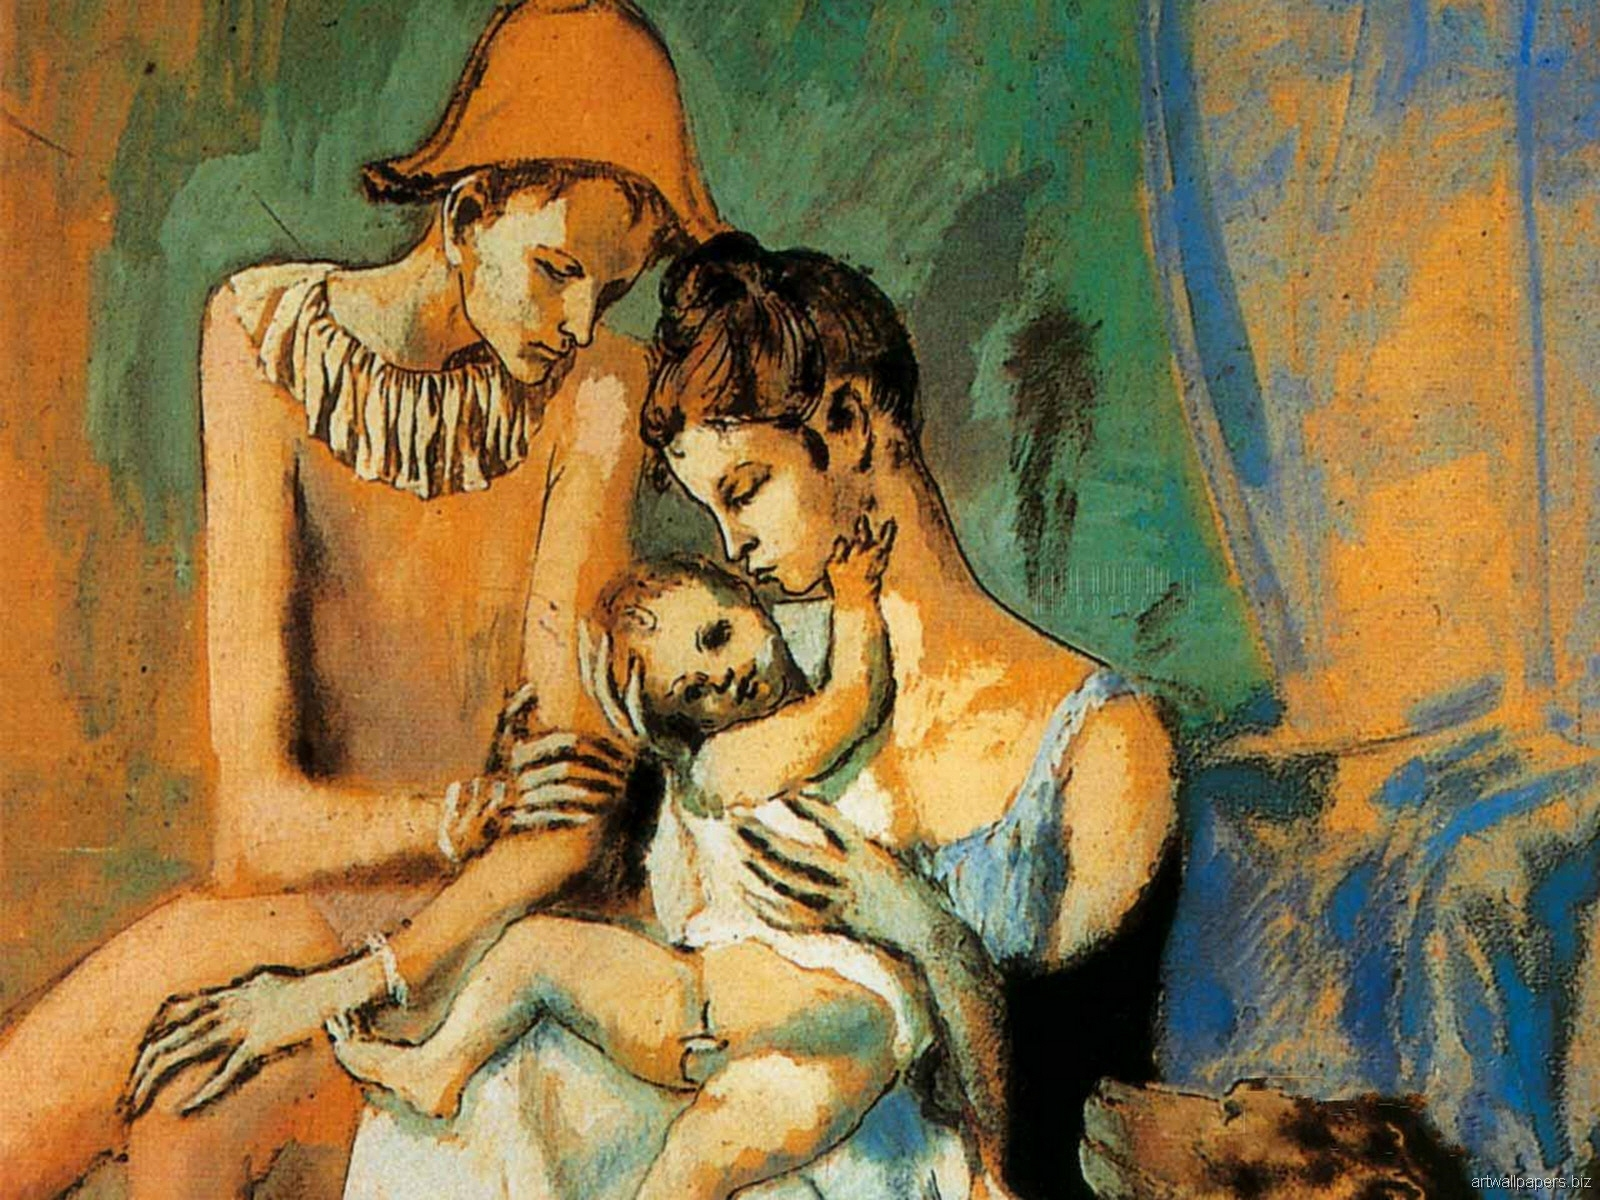 Pablo Picasso 1881-1973 | Cubist movement